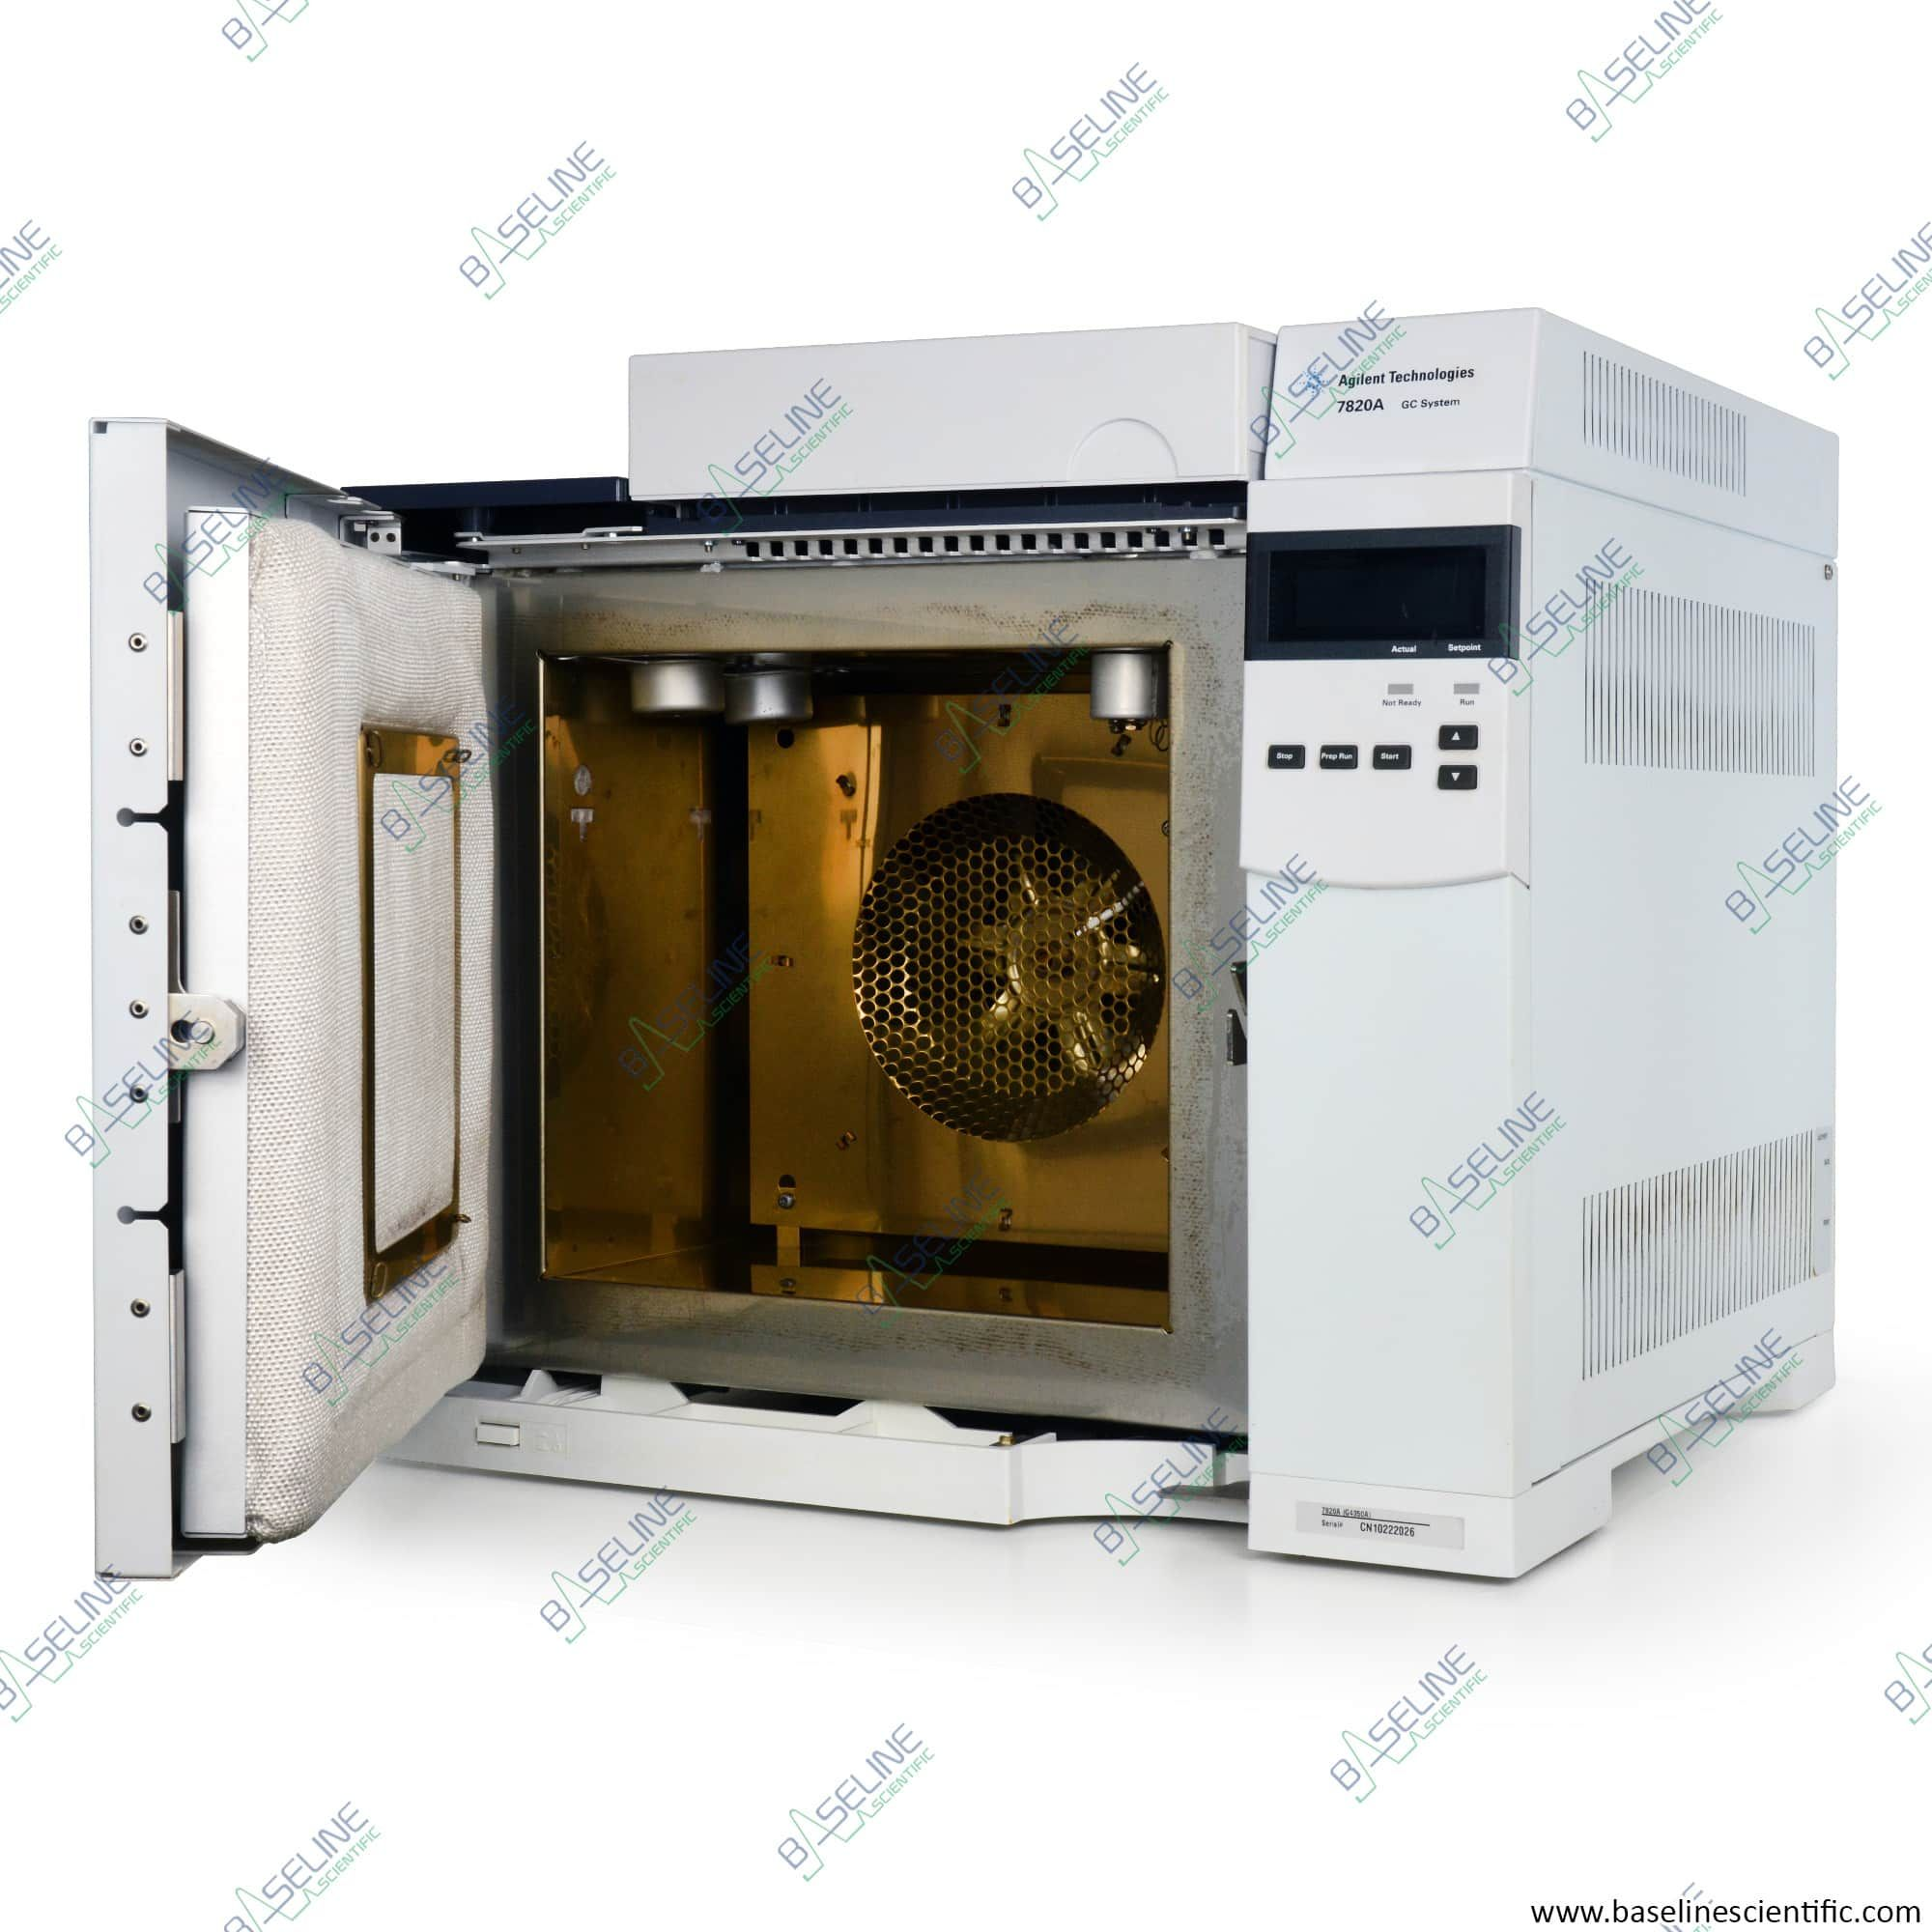 Refurbished Agilent 7820A G4350A Gas Chromatograph with One Year Warranty